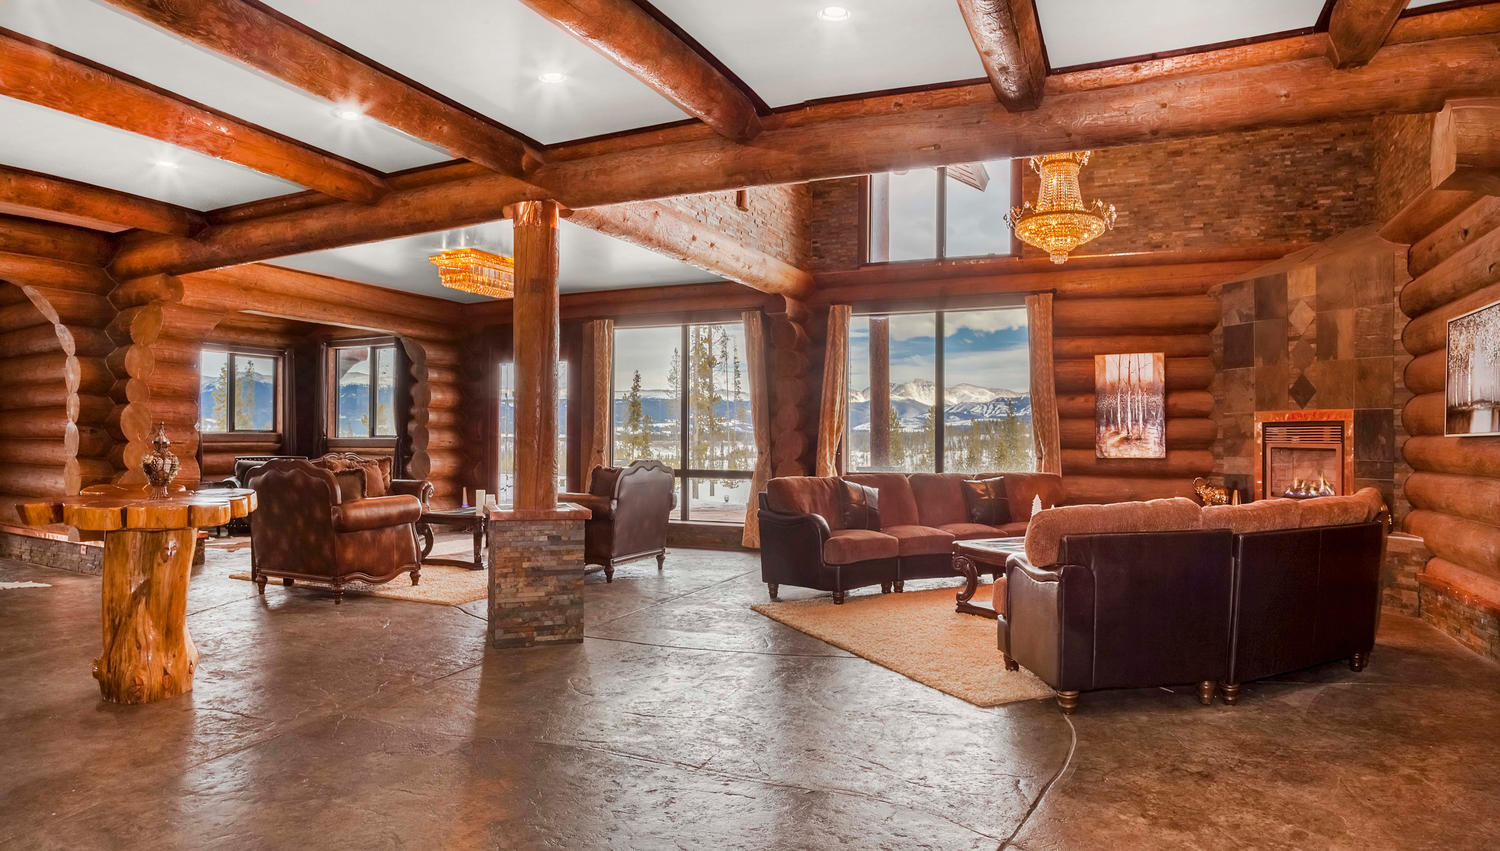 Single Family Home for Sale at Incredible Energy Efficient Log Estate 119 E Elk Meadows Dr Tabernash, Colorado, 80478 United States